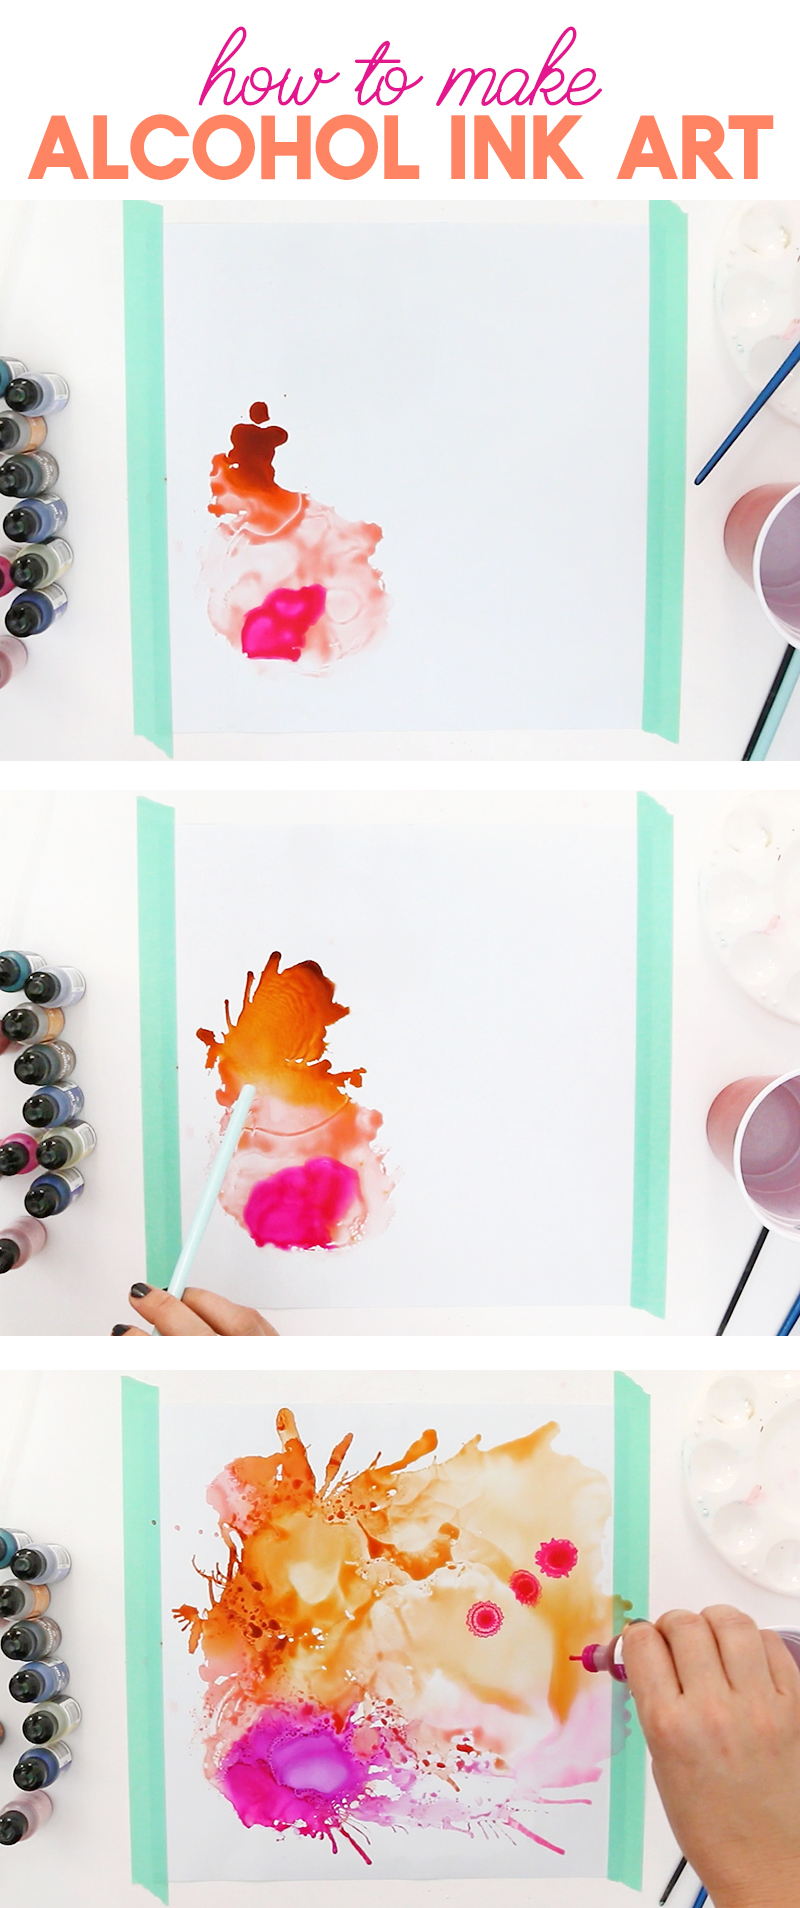 learn how to make cool abstract alcohol ink art on vinyl!